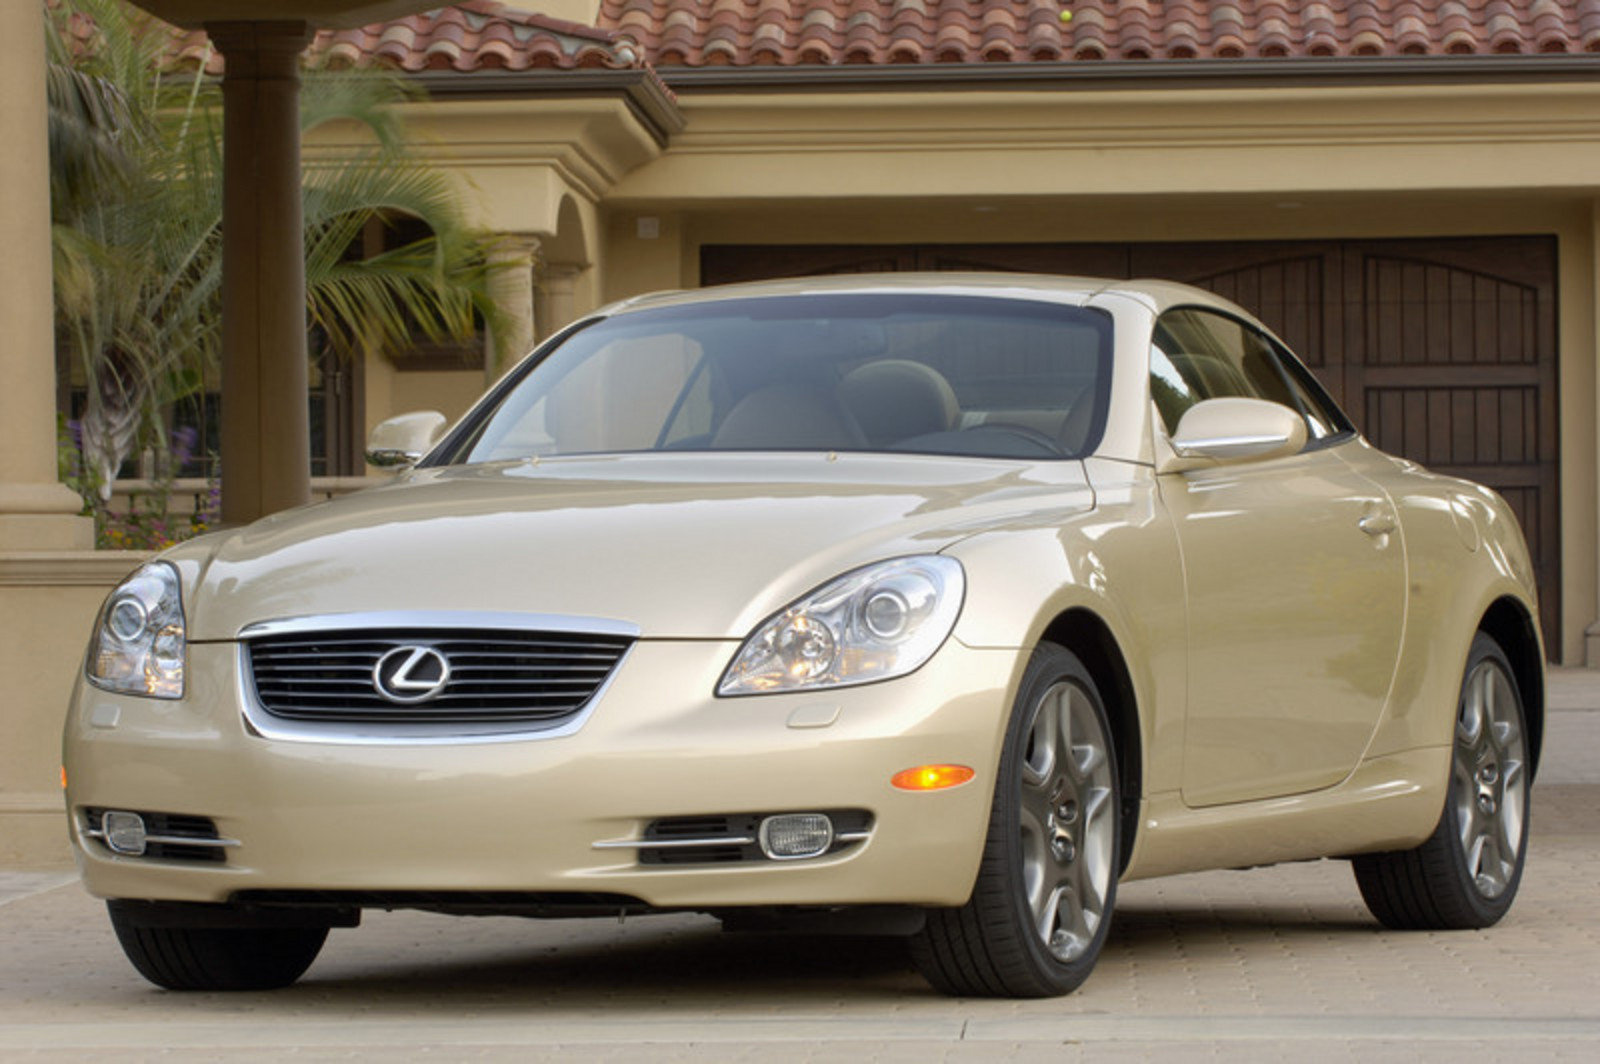 2006 lexus sc 430 picture 93302 car review top speed. Black Bedroom Furniture Sets. Home Design Ideas